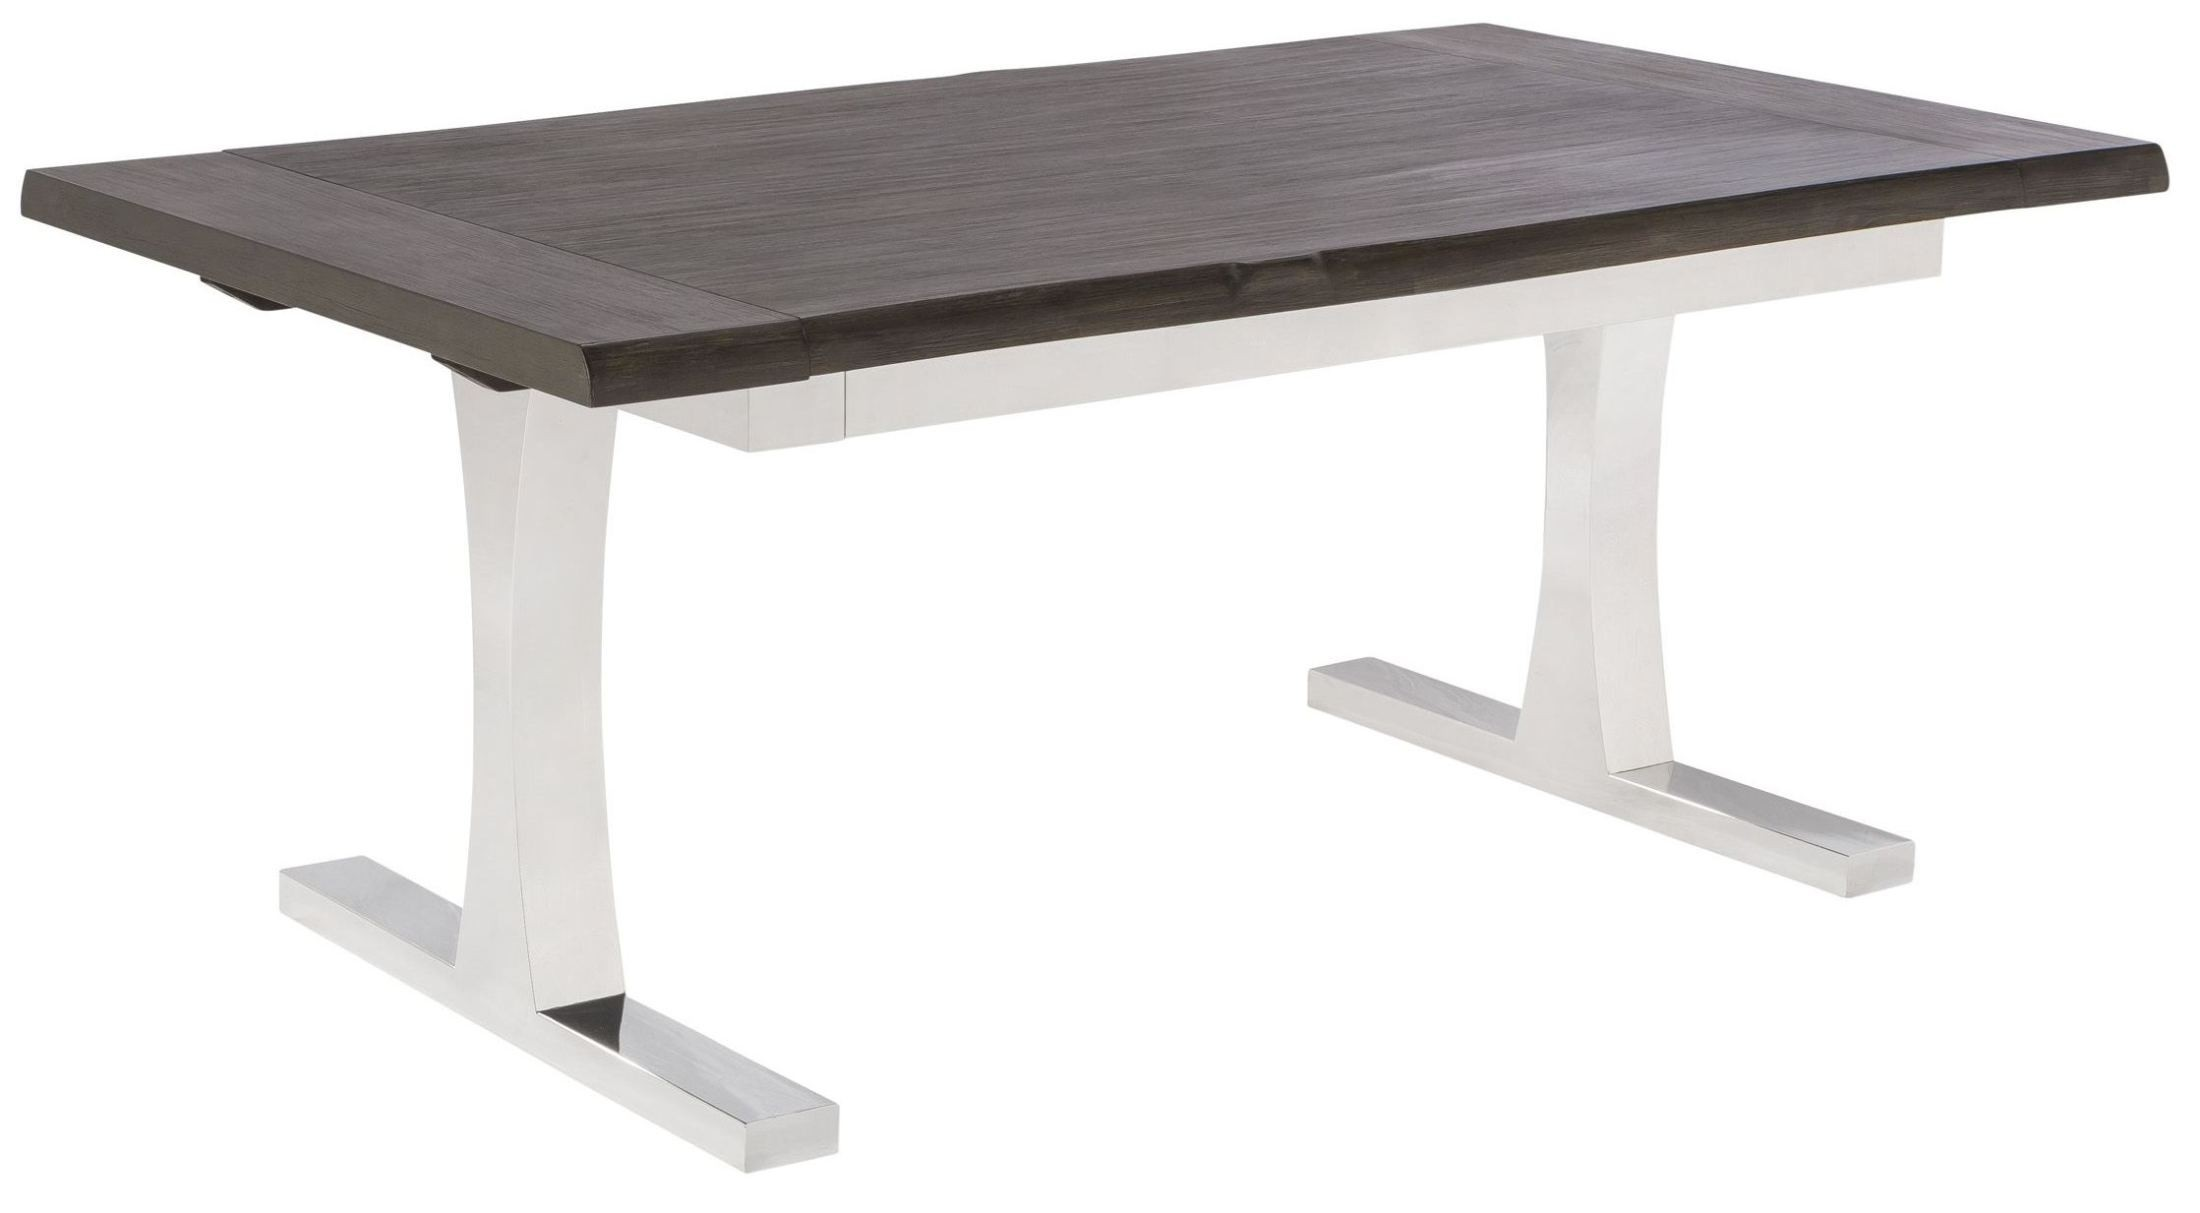 Dining Tables Extendable Marquez Extendable Rectangular Dining Table From Sunpan